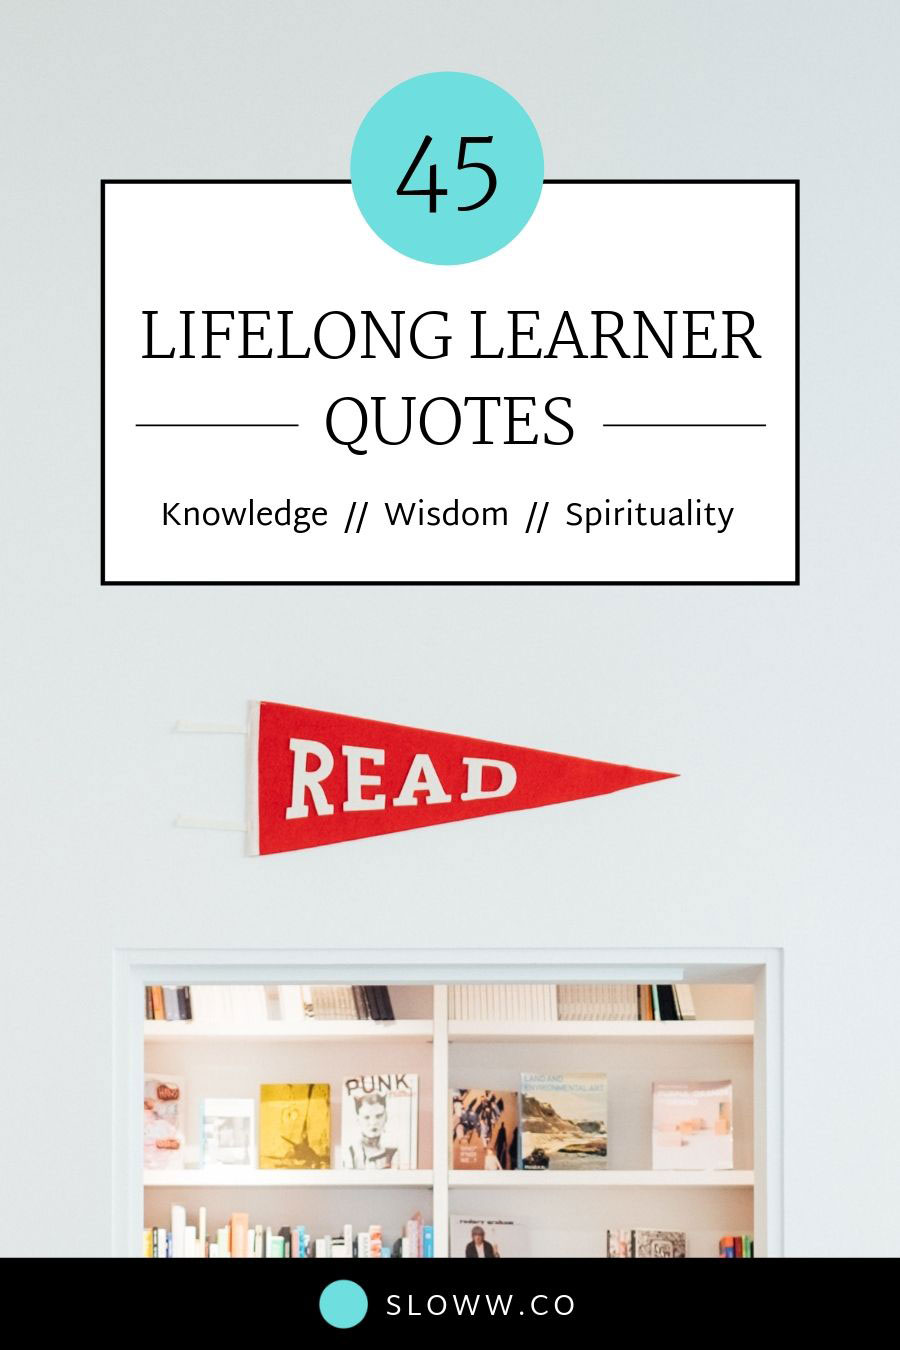 Sloww Lifelong Learning Quotes Infographic